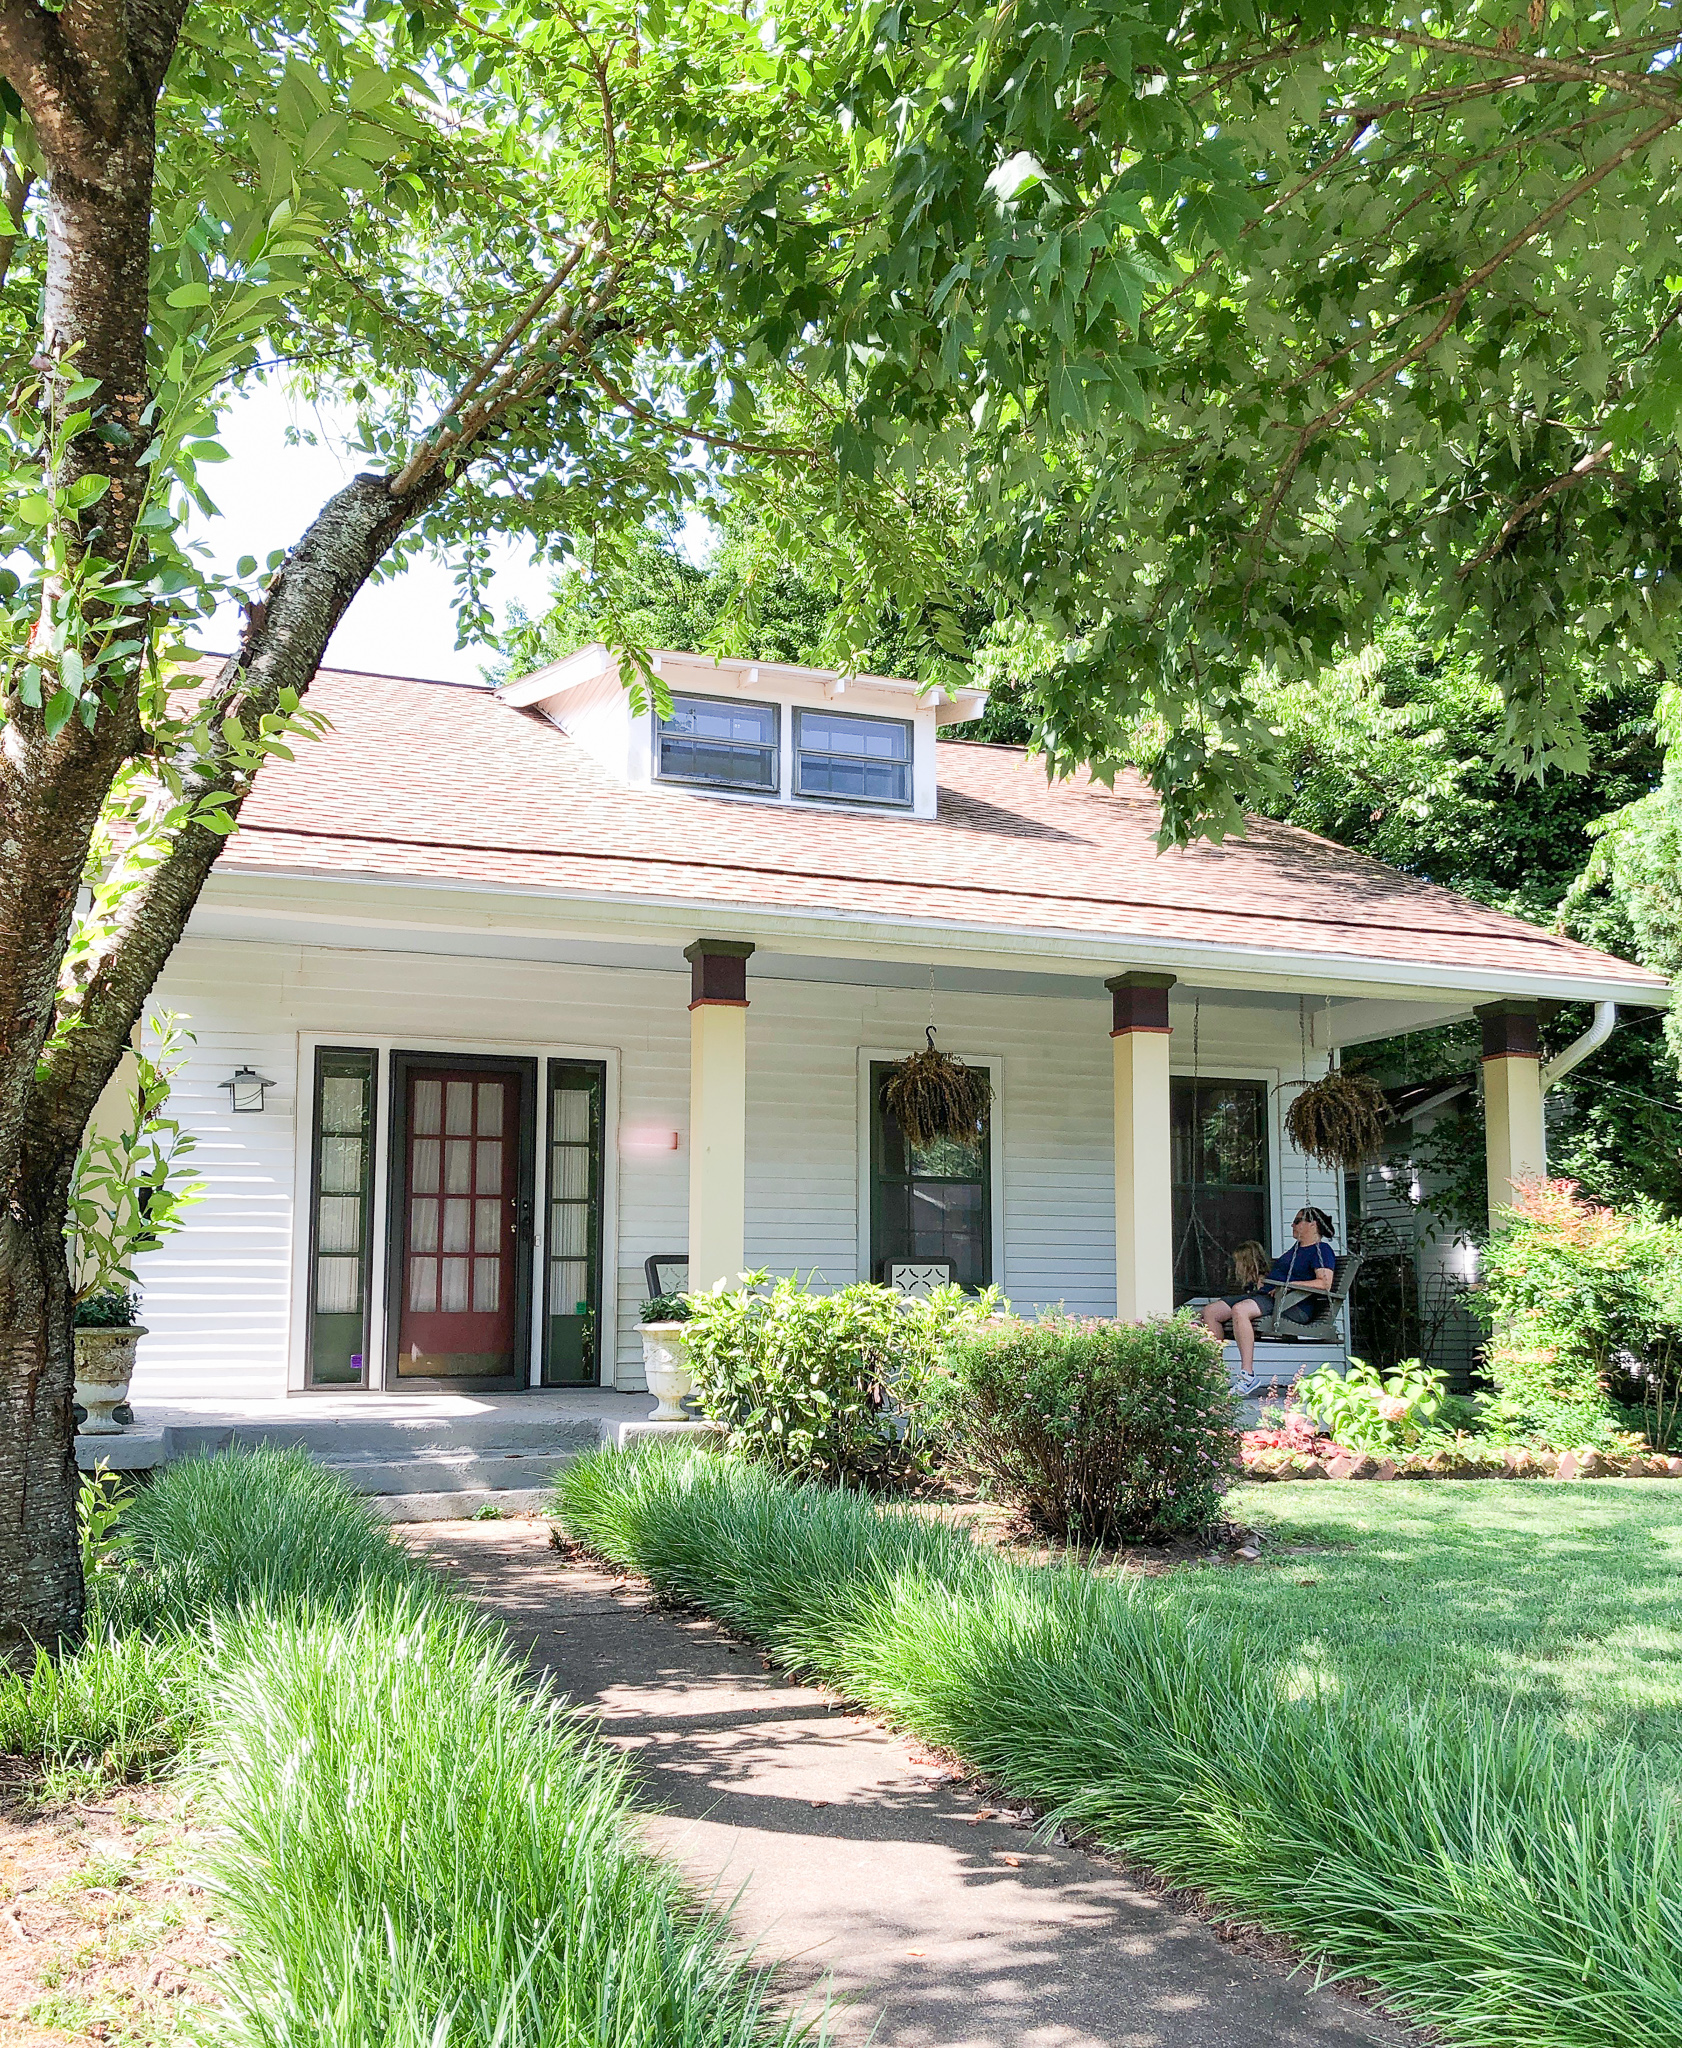 What Is A California Bungalow? Explaining our 1920s bungalow's architectural style and why most homes you think are Craftsman style are most likely California Bungalow! #historichomes #homerestoration #bungalows